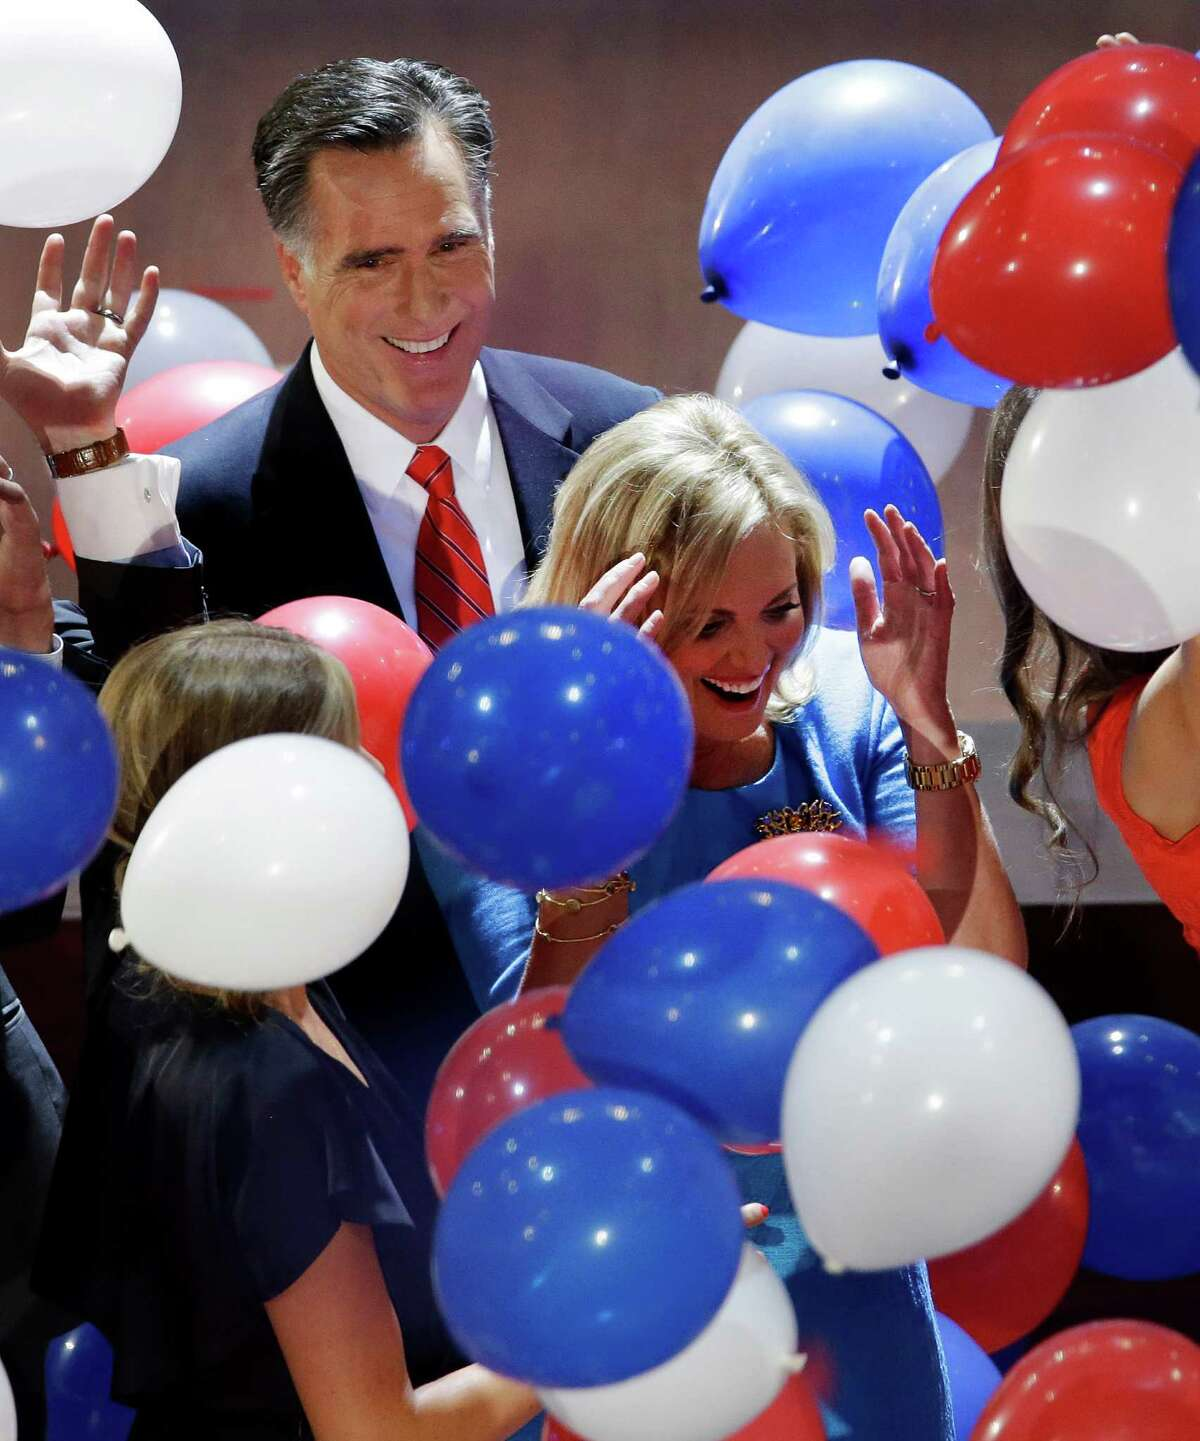 Republican presidential nominee Mitt Romney watches as balloons fall around him and his wife Ann during the Republican National Convention in Tampa, Fla., on Friday, Aug. 31, 2012.